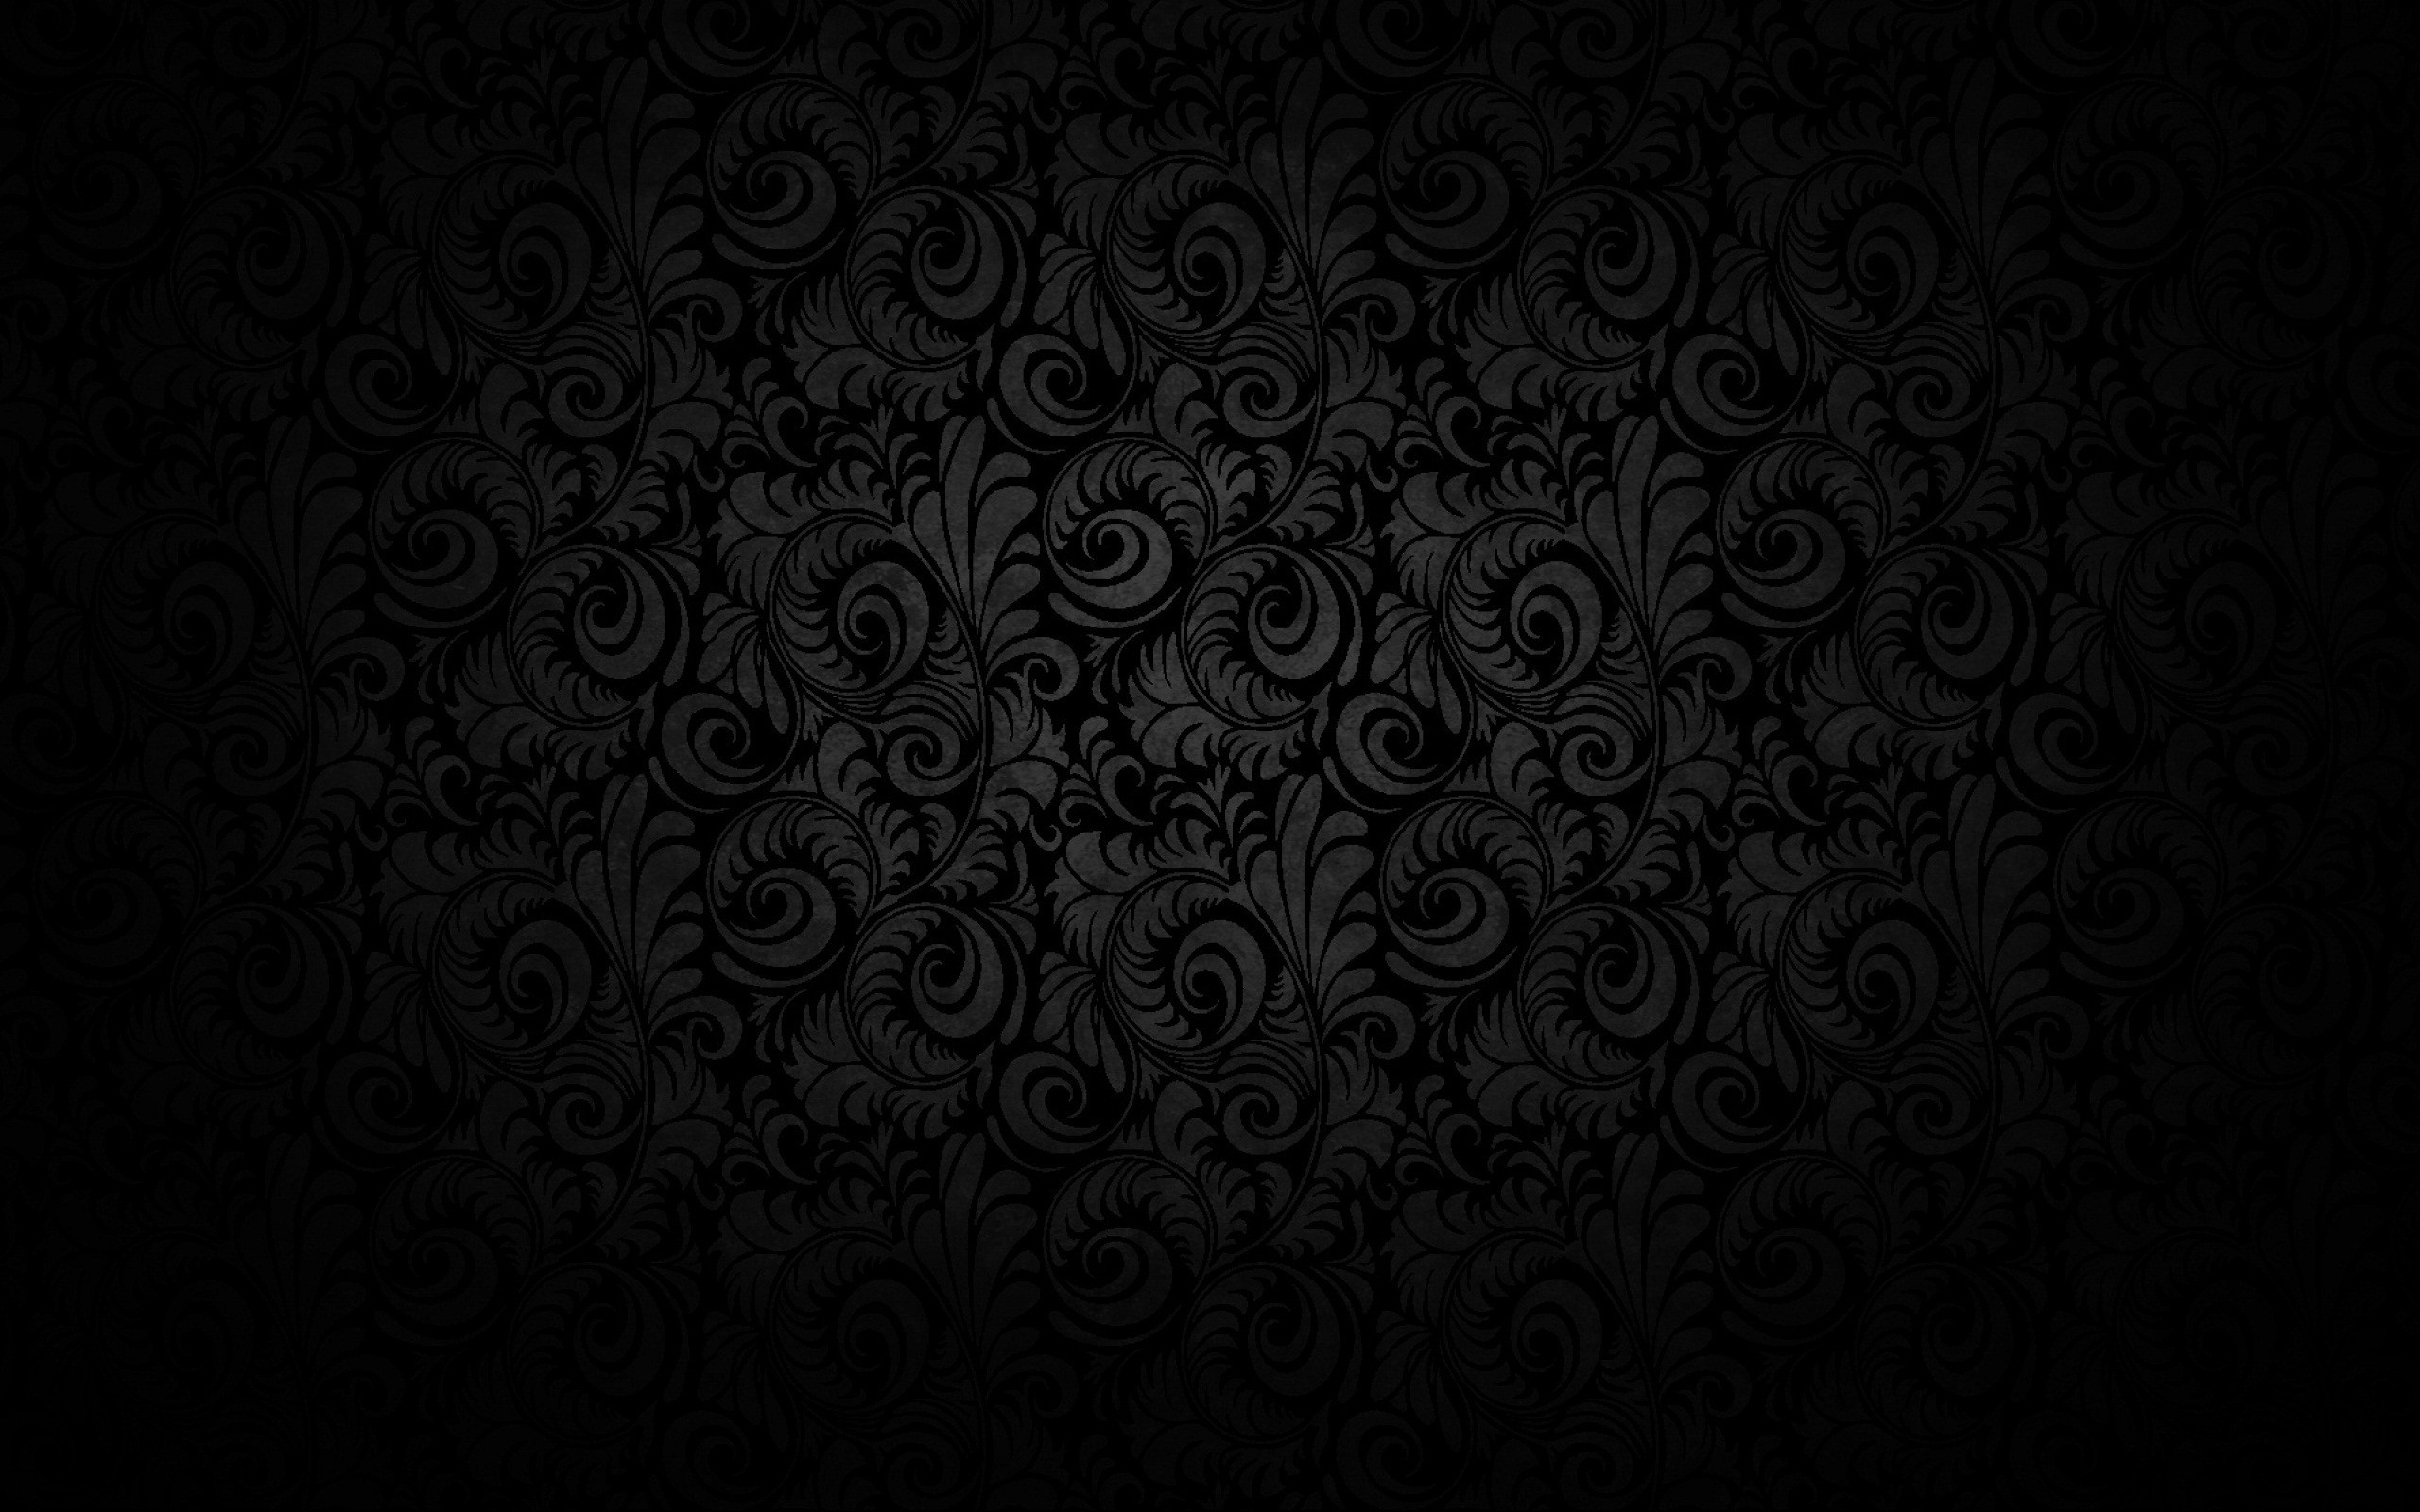 designs vector wallpaper background black walls 2560x1600 2560x1600